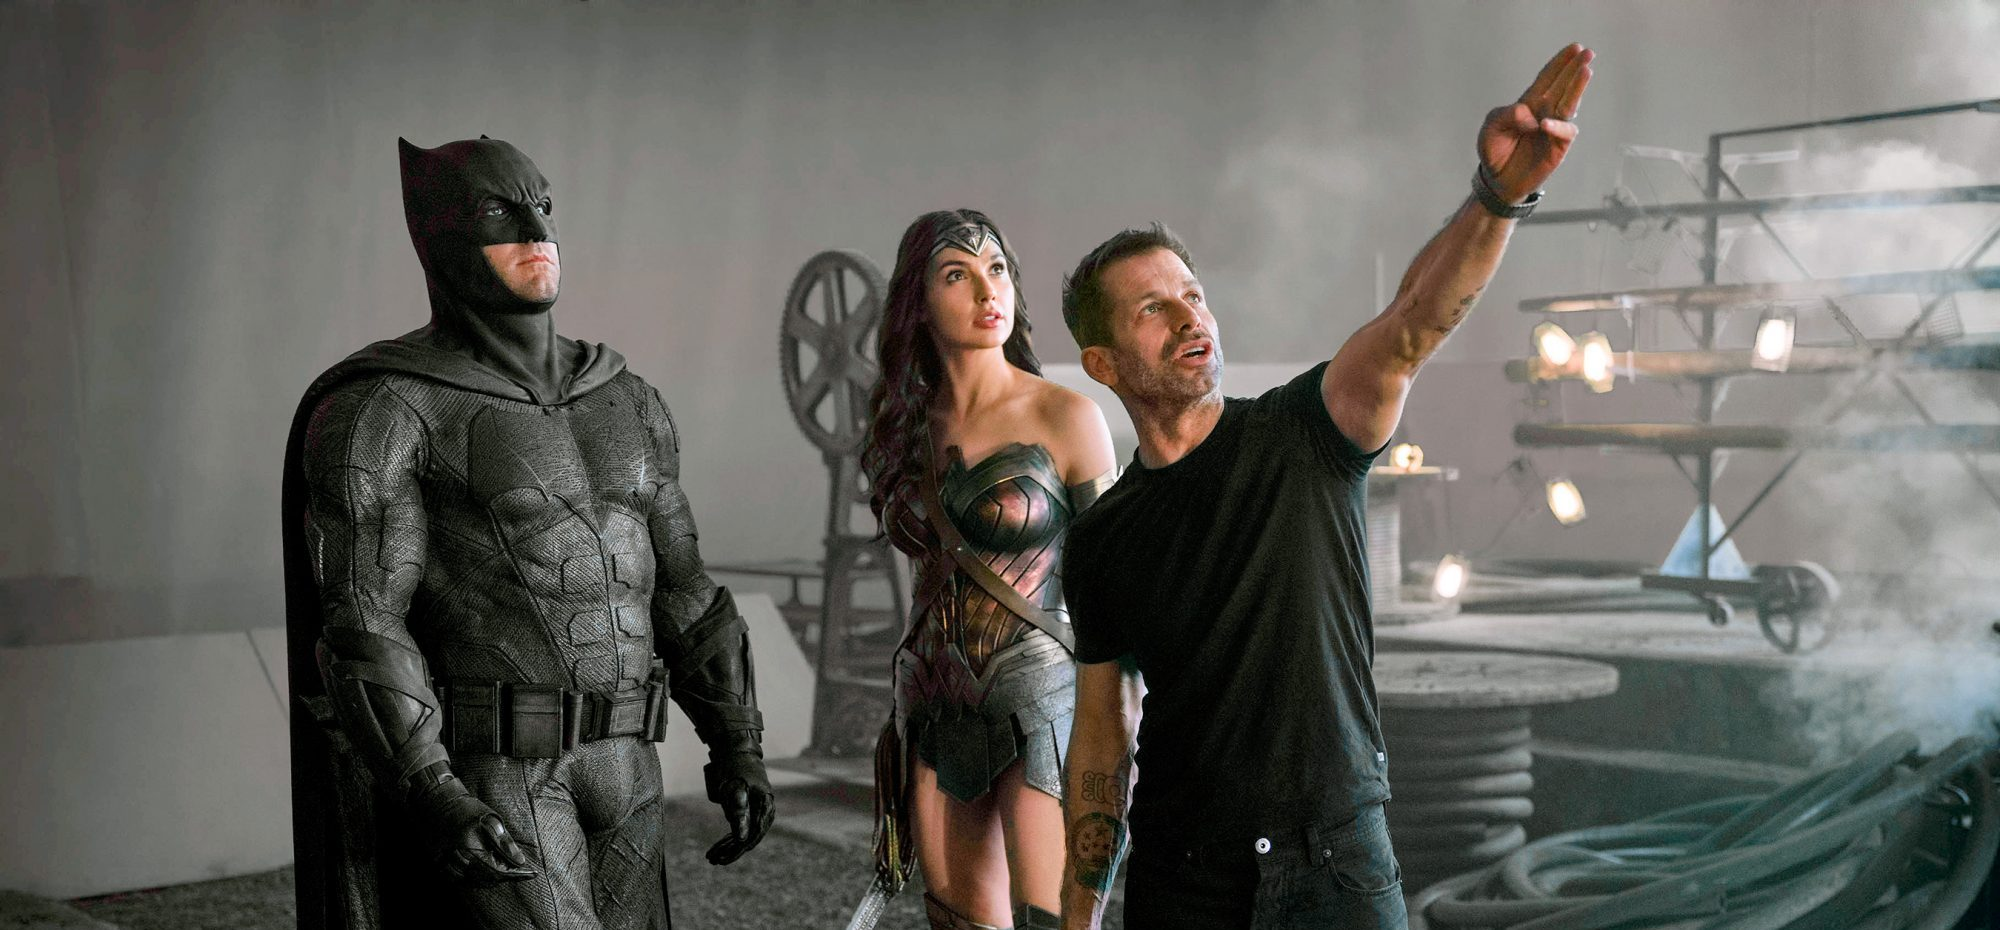 Review of the movie Zack Snyder's Justice League blockbuster DC house